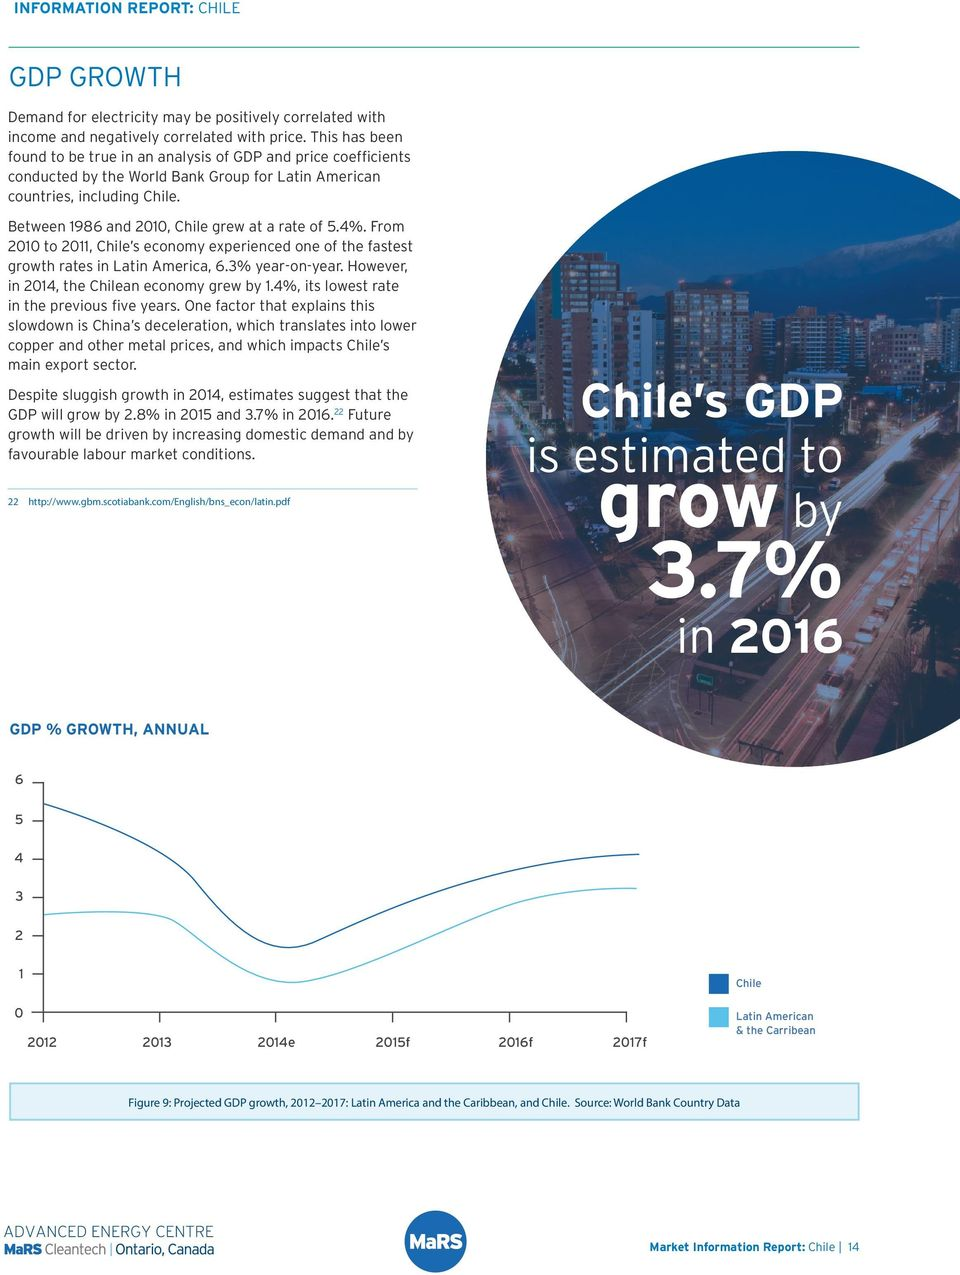 Between 1986 and 2010, Chile grew at a rate of 5.4%. From 2010 to 2011, Chile s economy experienced one of the fastest growth rates in Latin America, 6.3% year-on-year.